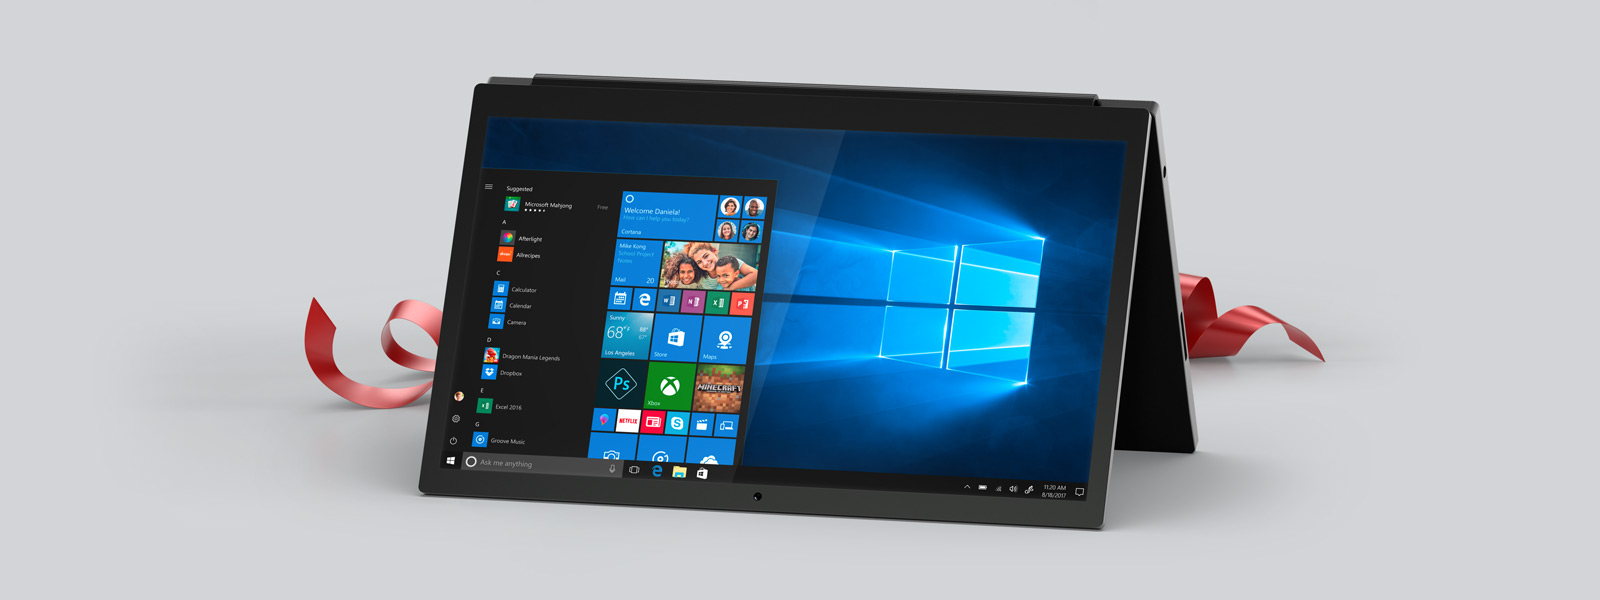 A Windows 10 PC in tent mode with a red ribbon behind it.